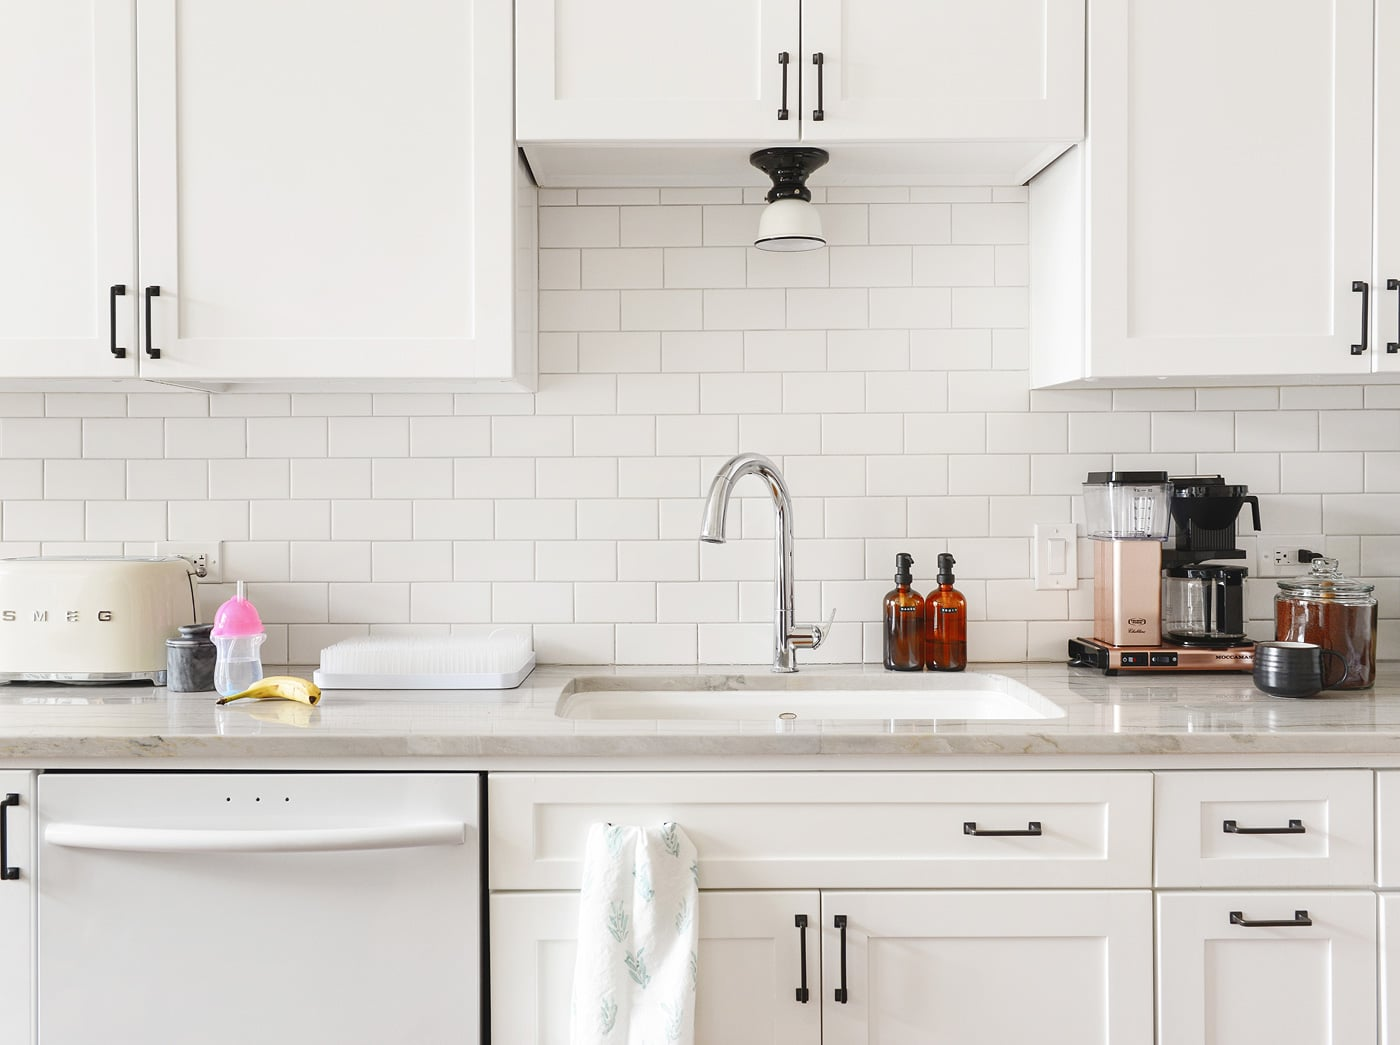 A white kitchen with amber soap pumps | via Yellow Brick Home